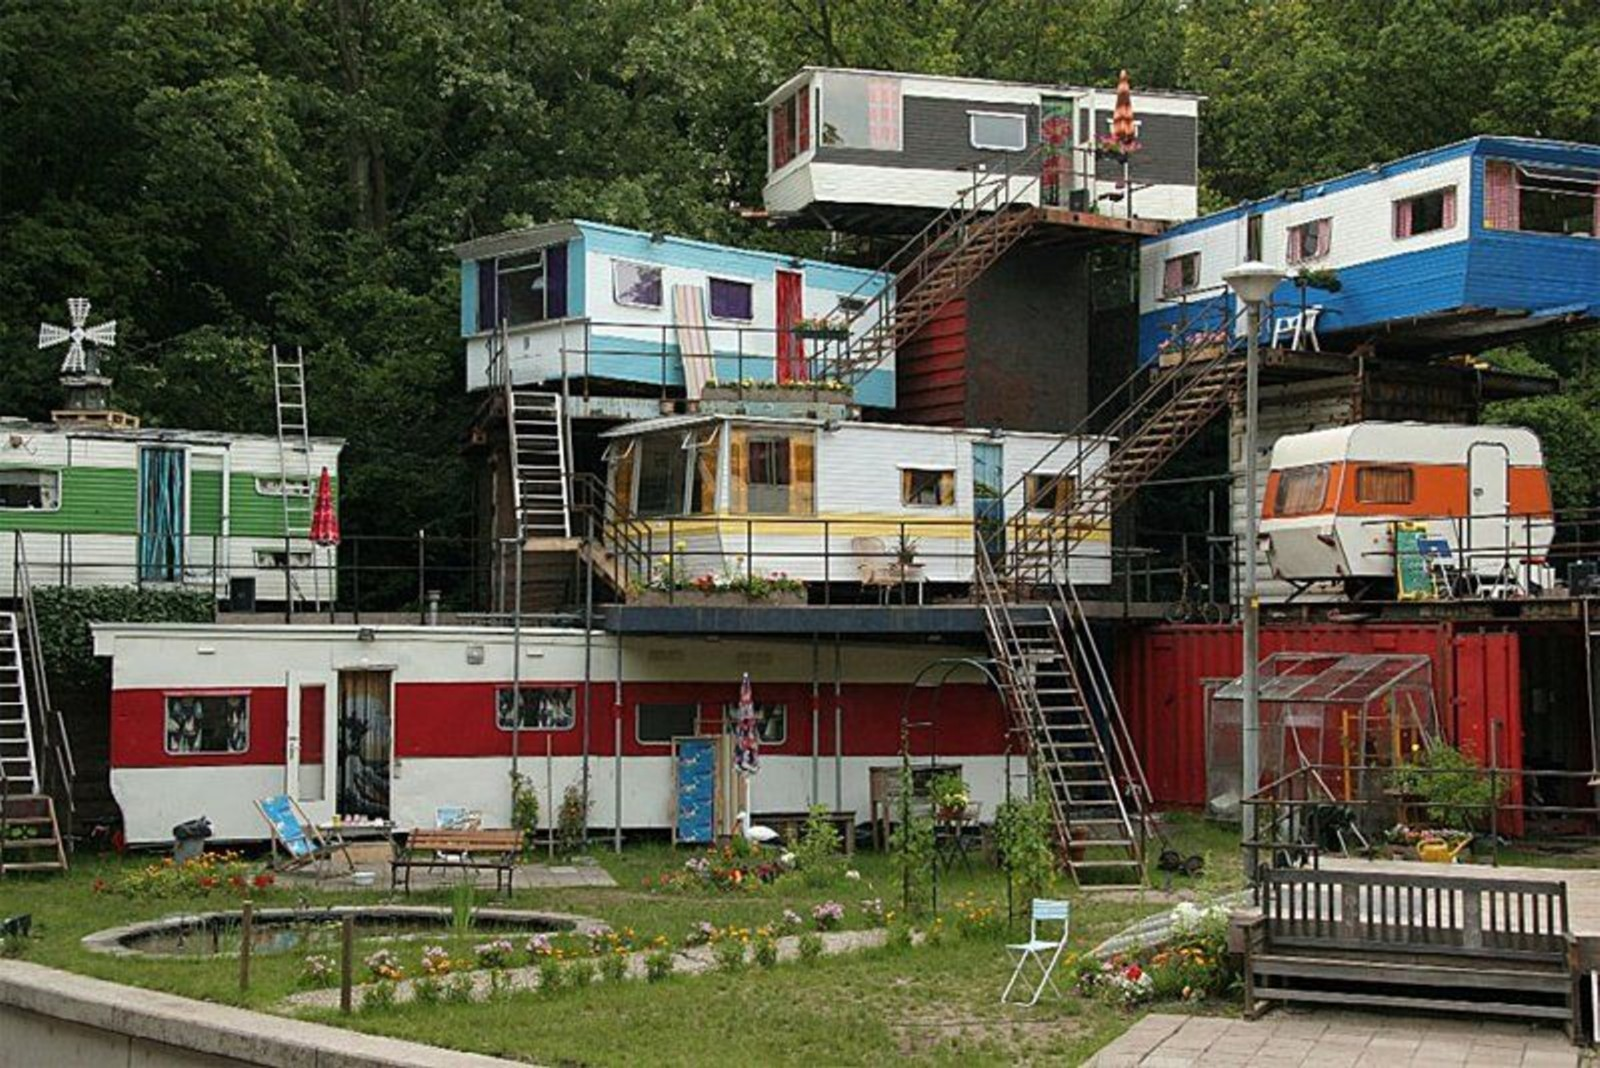 Click image for larger version  Name:HillbillyHeaven.jpg Views:173 Size:437.5 KB ID:56575